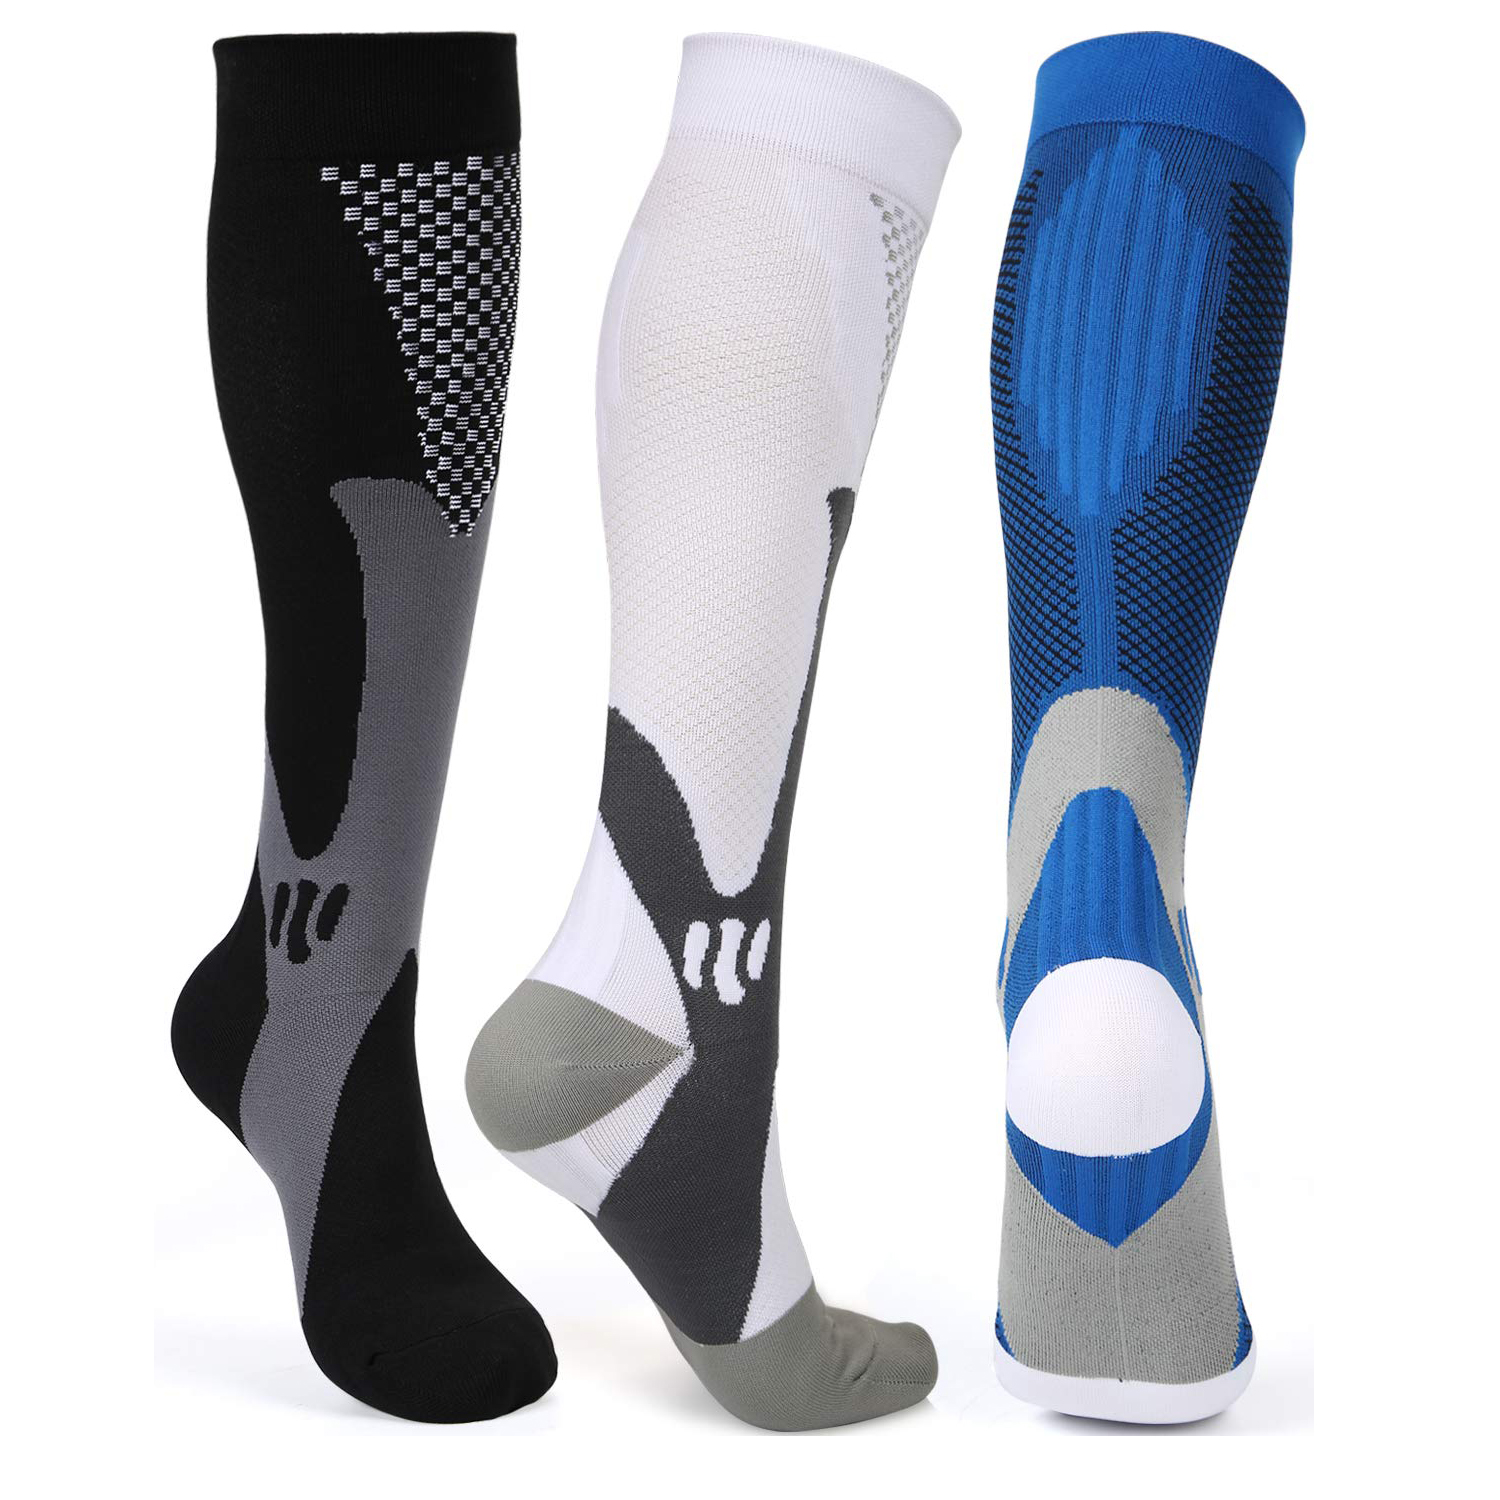 Stockings Compression-Socks Cycling Specializes Brothock Adult Medical-Nursing Breathable